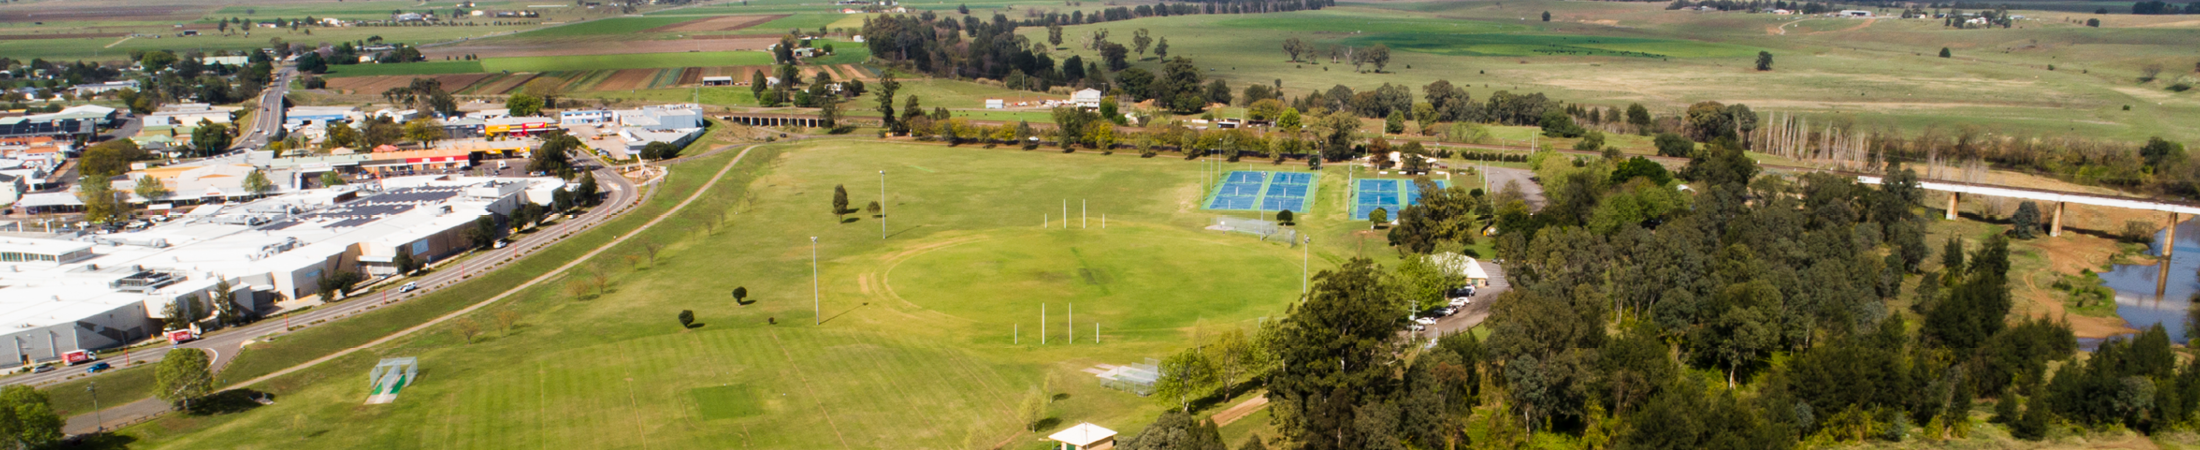 Singleton sporting fields and town